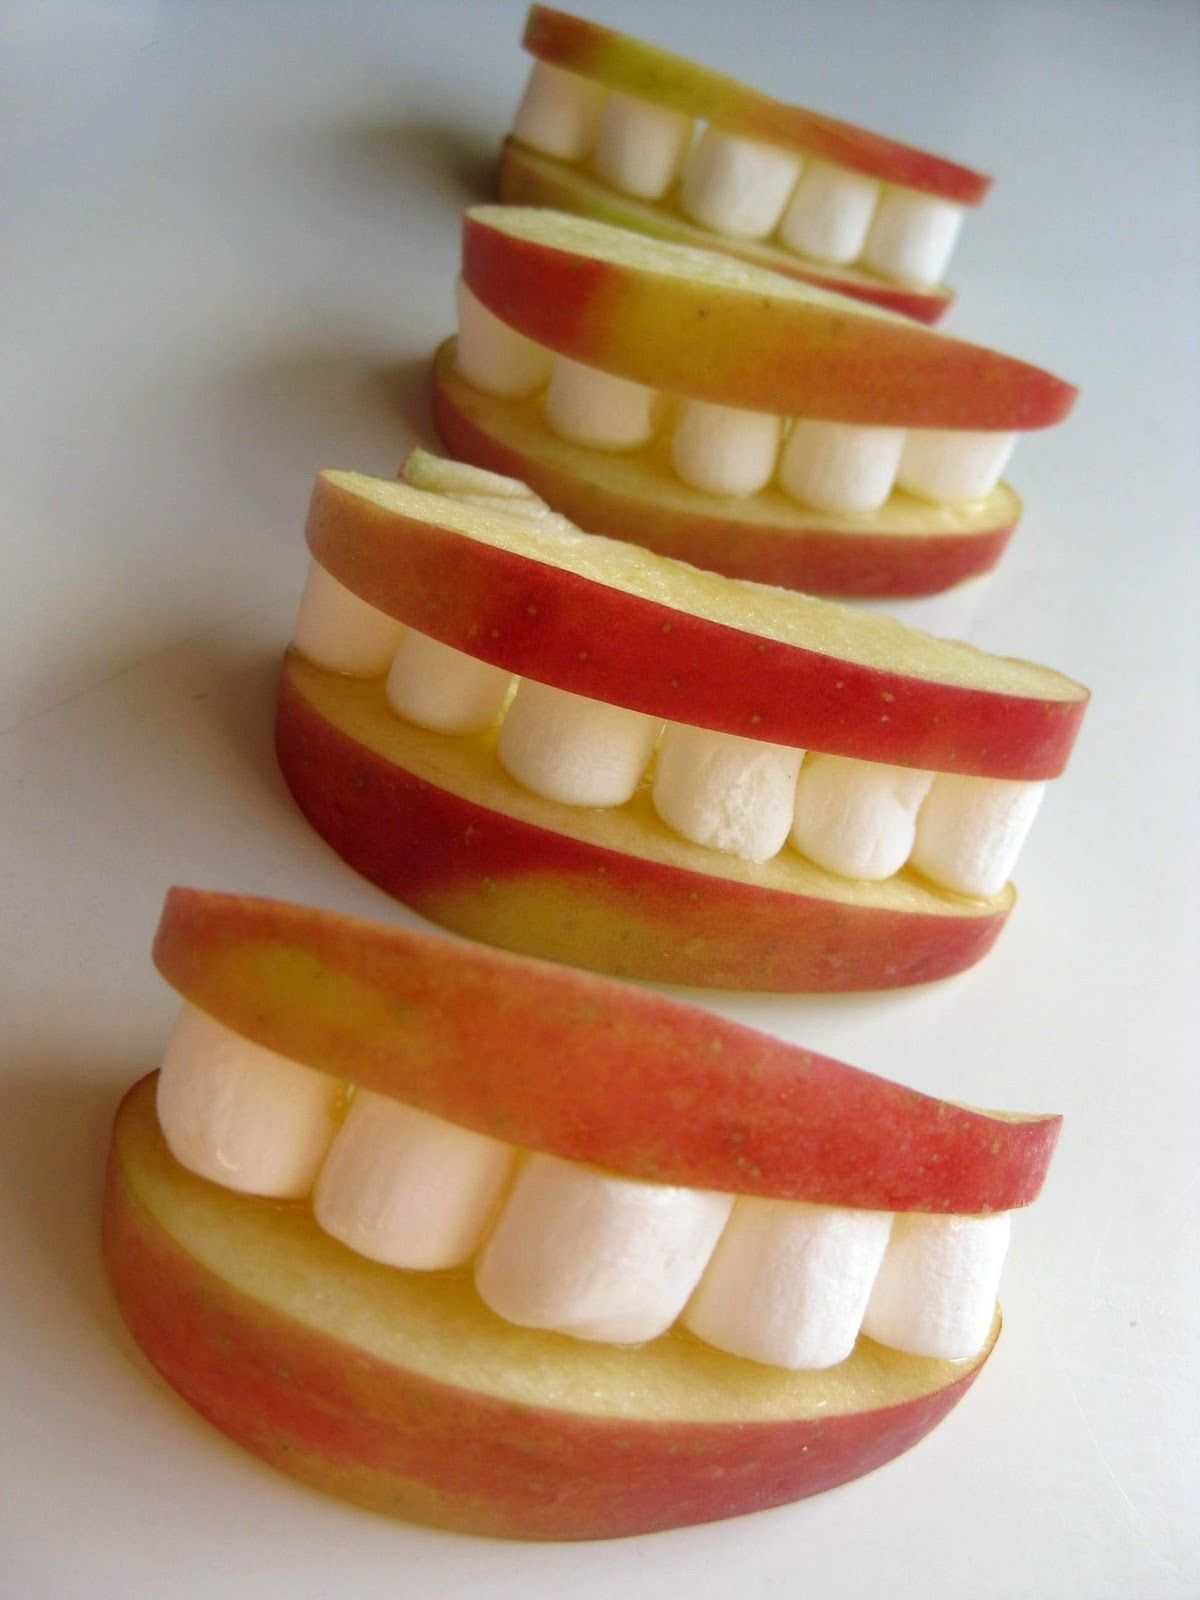 adorable are these apple smiles? And they couldn't be more simple—apple slices held together with a layer of peanut butter (or honey),then stuffed with mini-marshmallows.